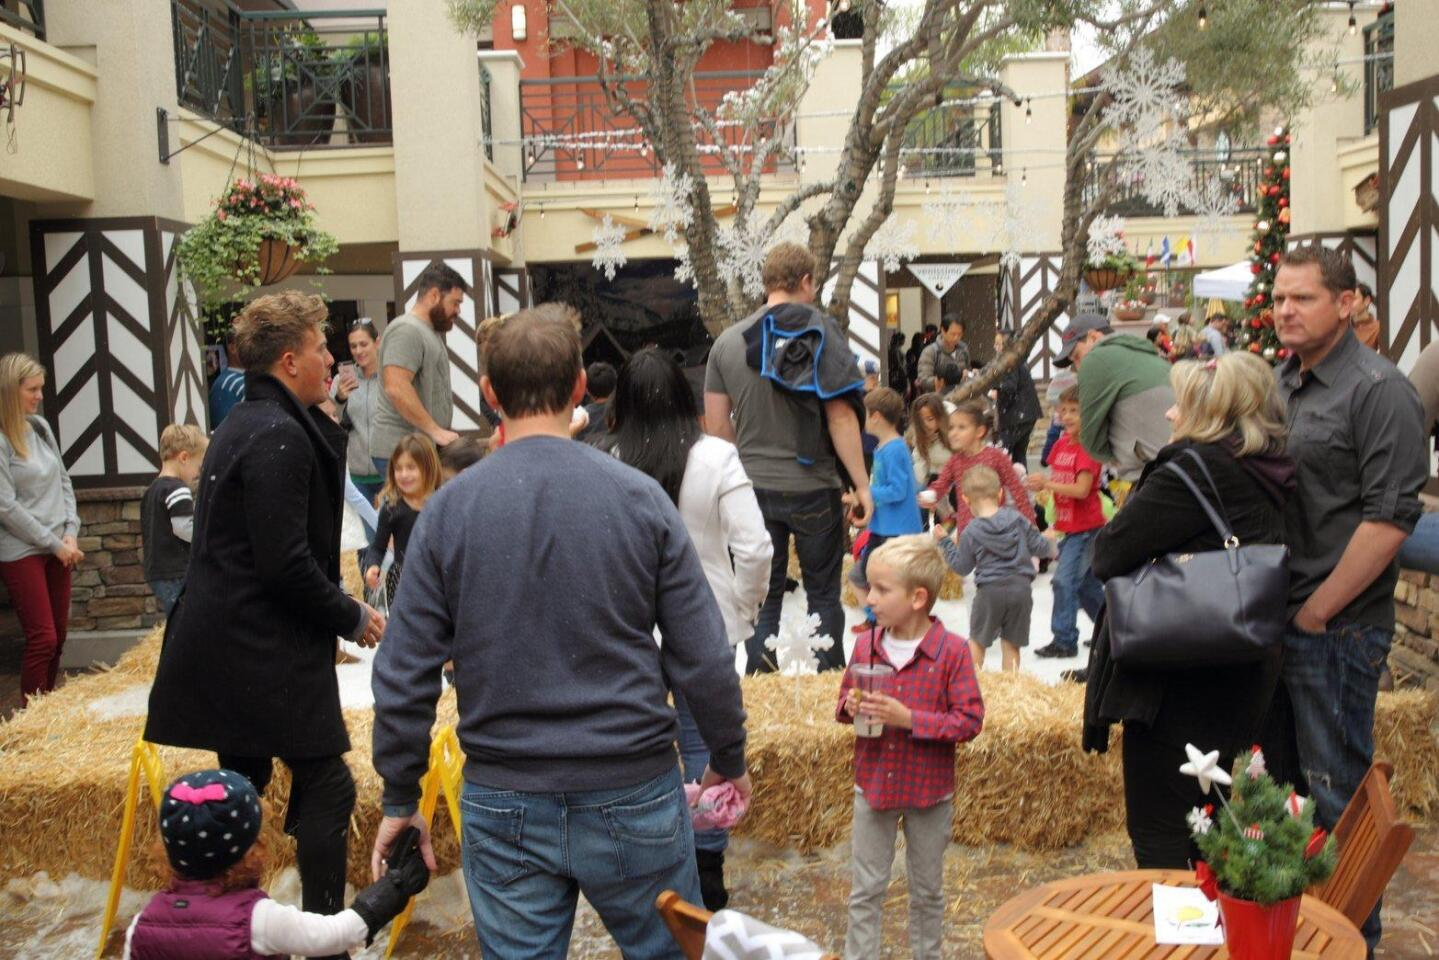 Families enjoy the snow village at Flower Hill Mall